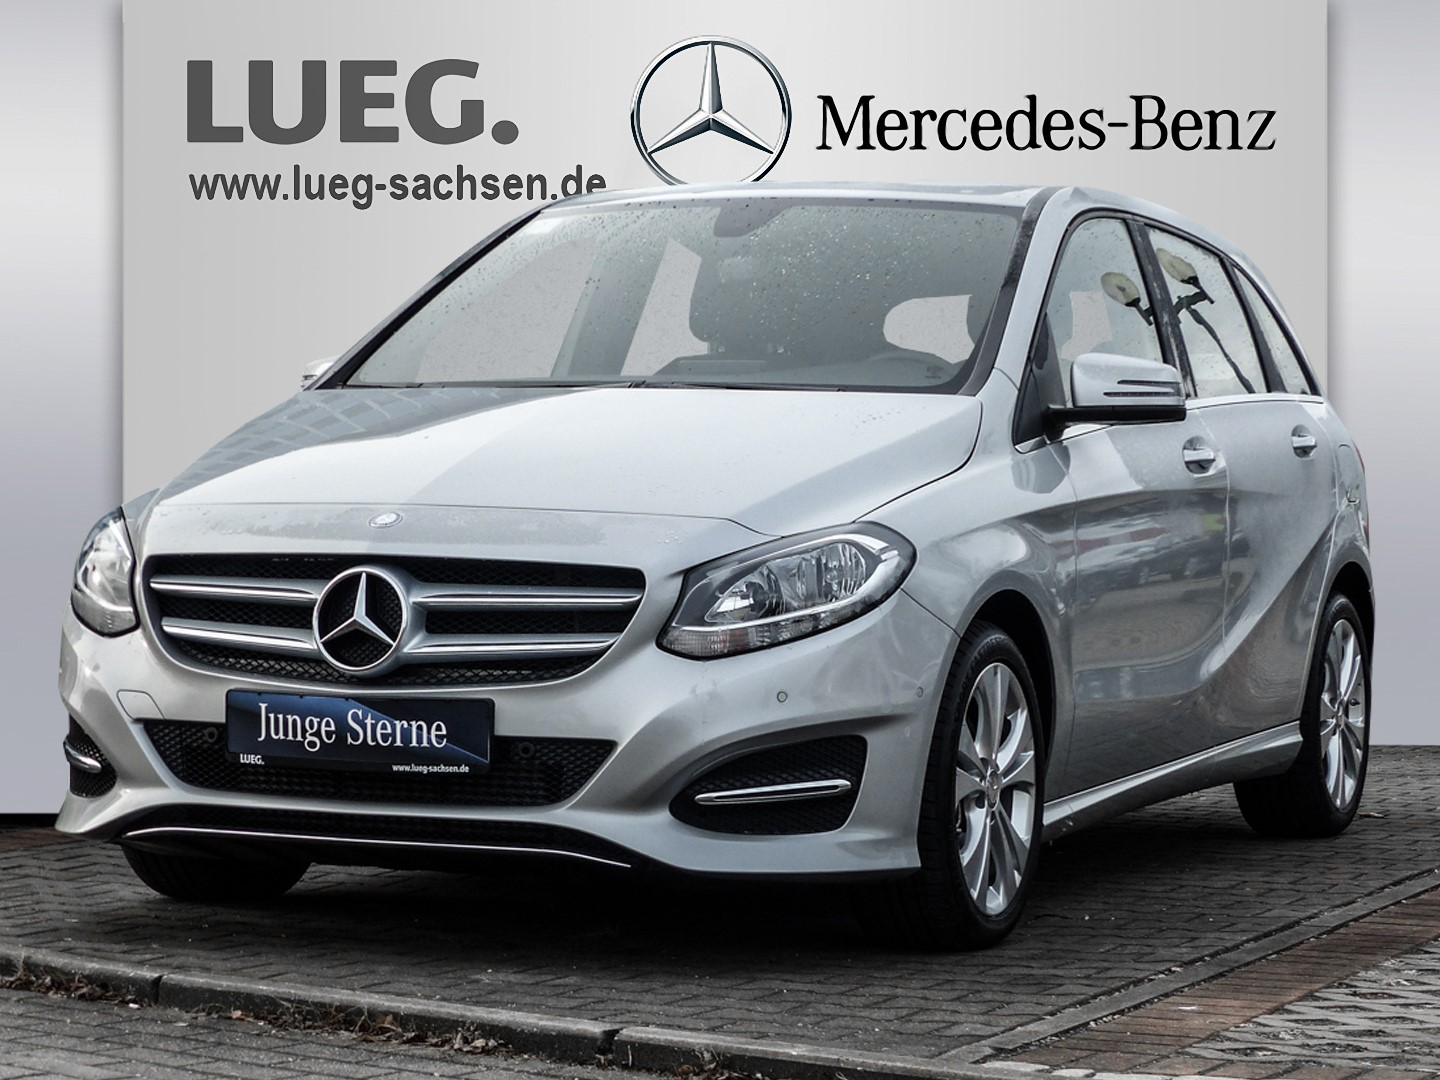 mercedes benz gebrauchtwagen lueg autos post. Black Bedroom Furniture Sets. Home Design Ideas